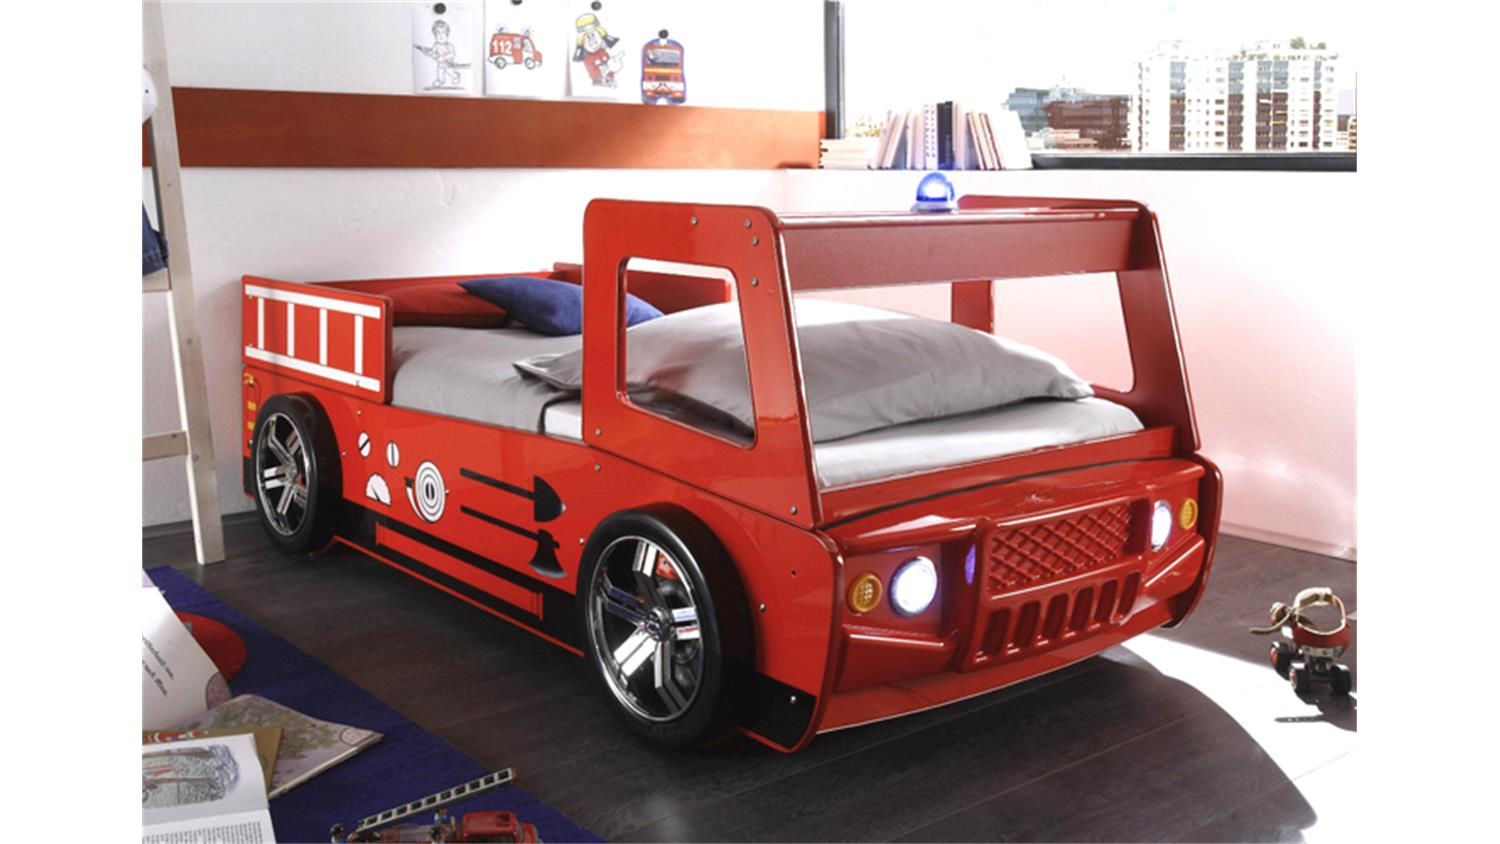 kinderbett feuerwehr die feinste sammlung von home design zeichnungen. Black Bedroom Furniture Sets. Home Design Ideas